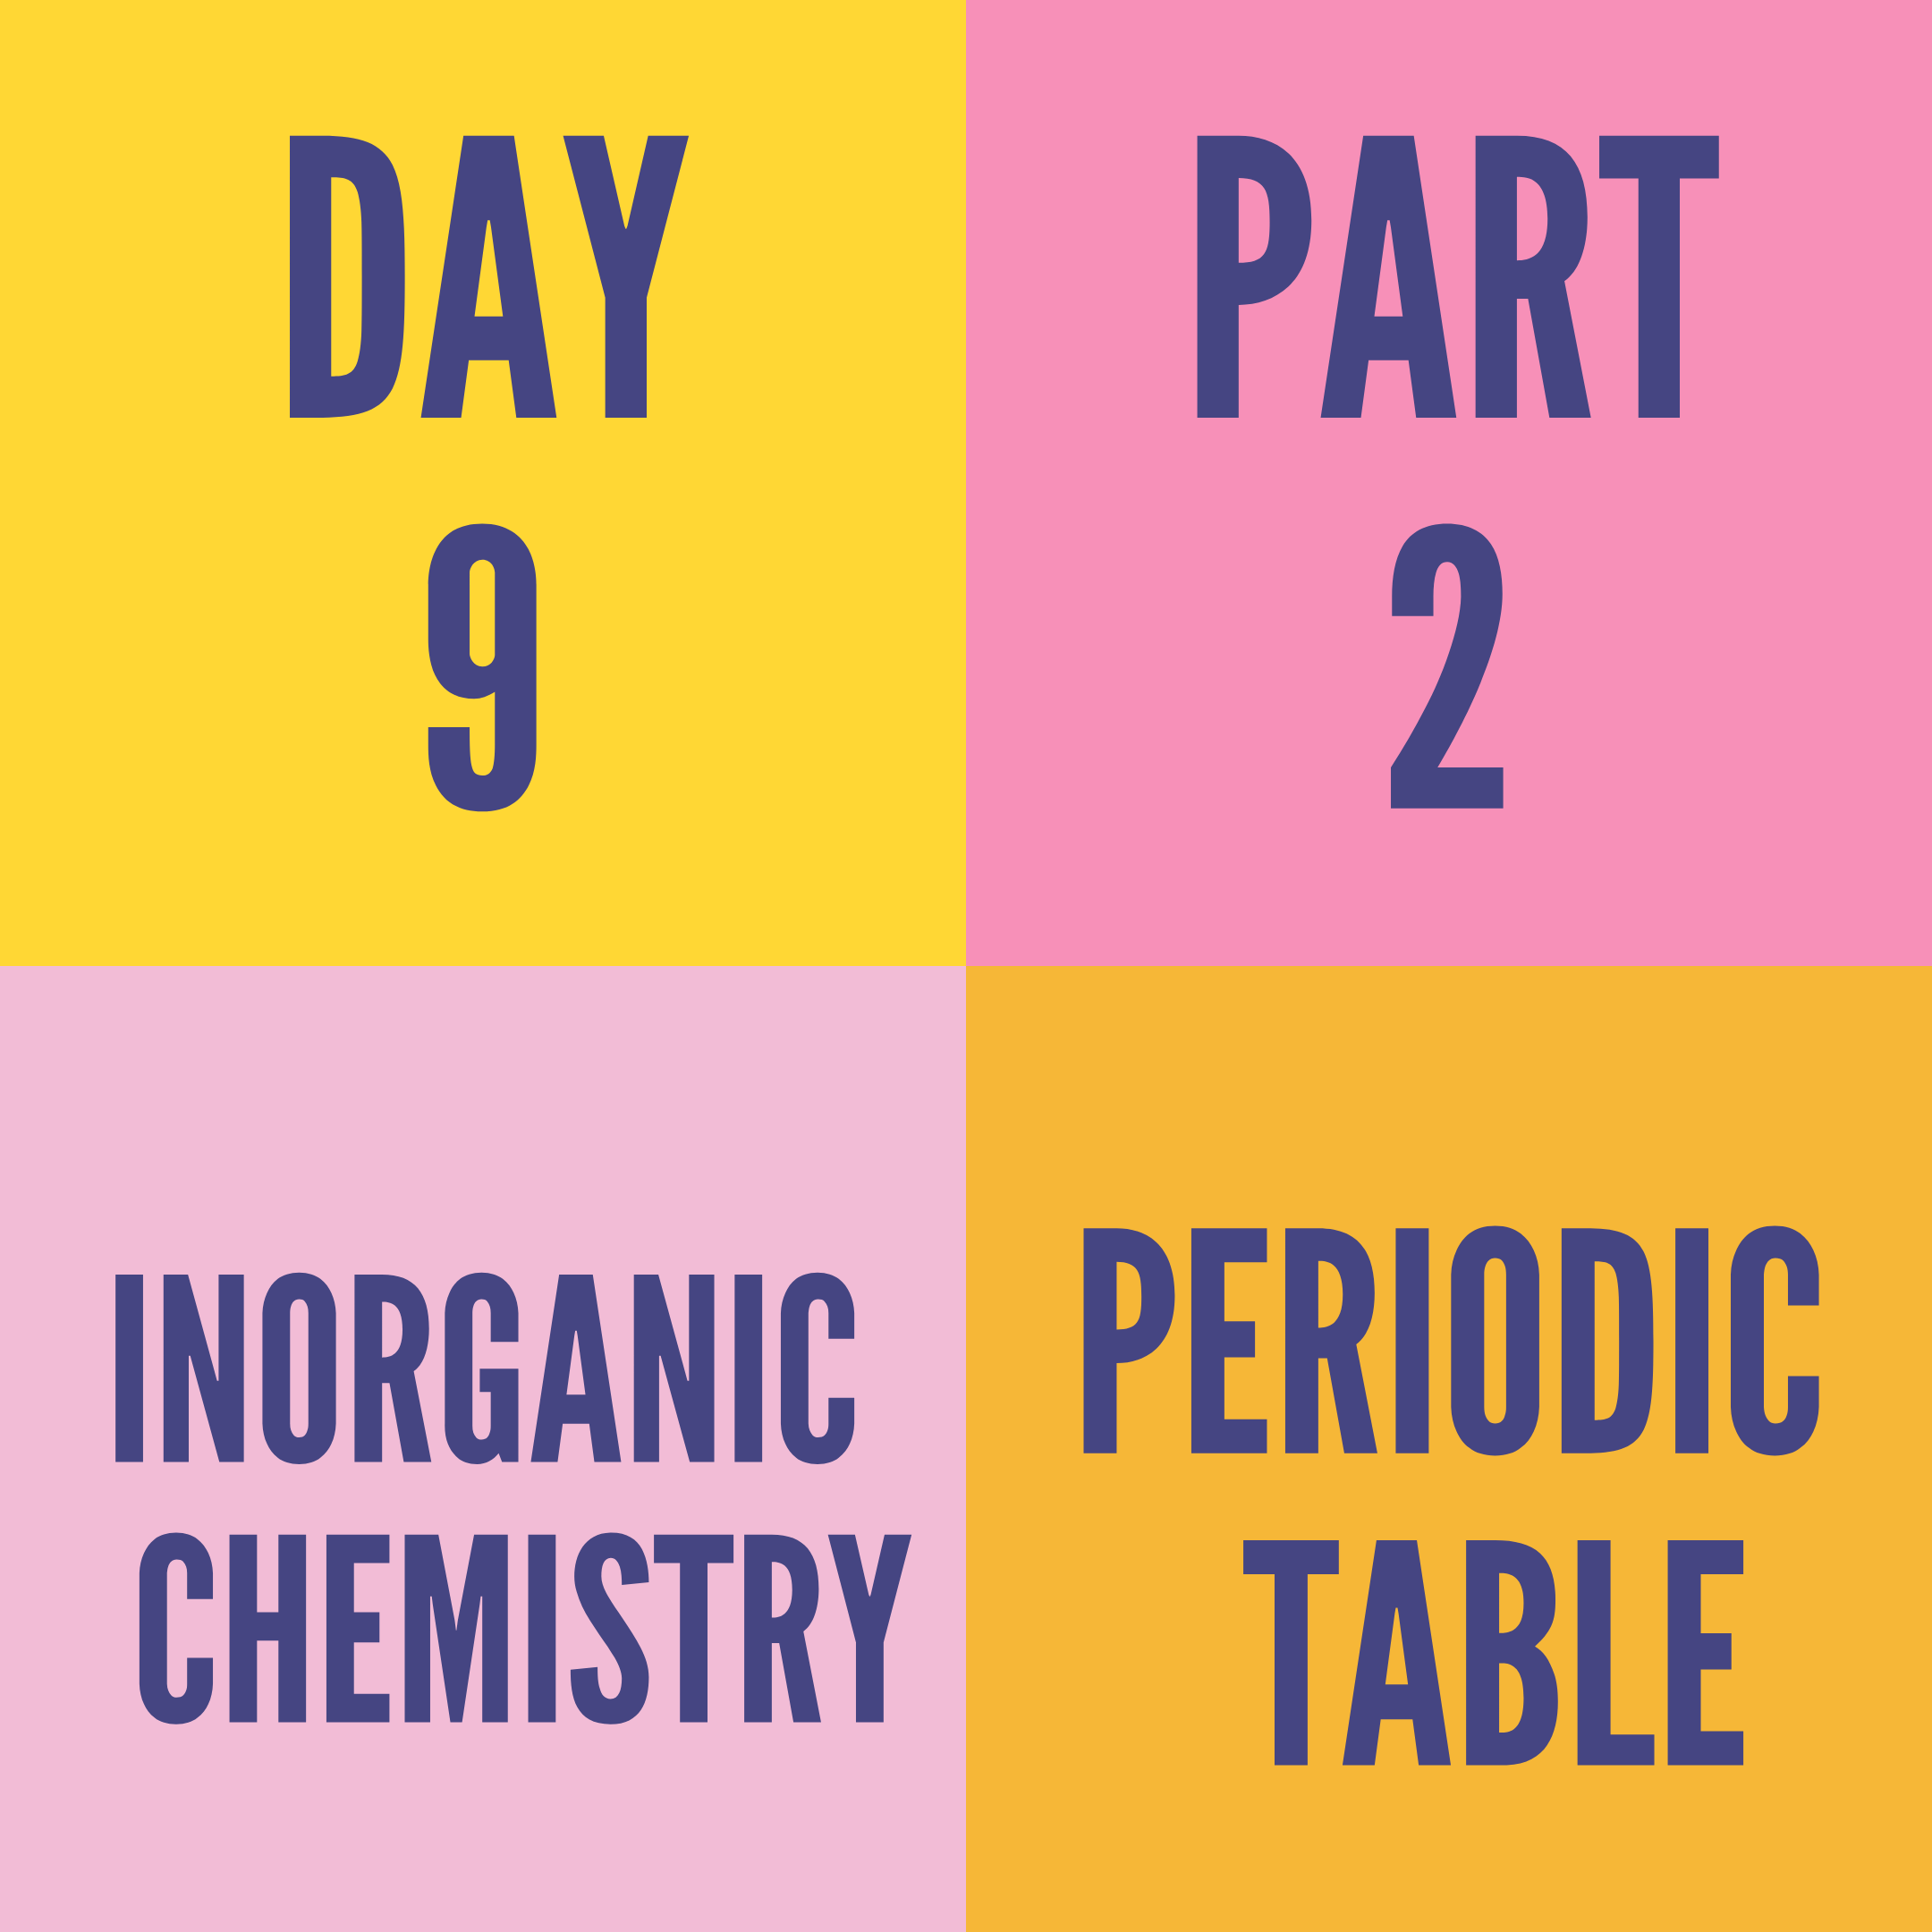 DAY-9 PART-2 PERIODIC TABLE